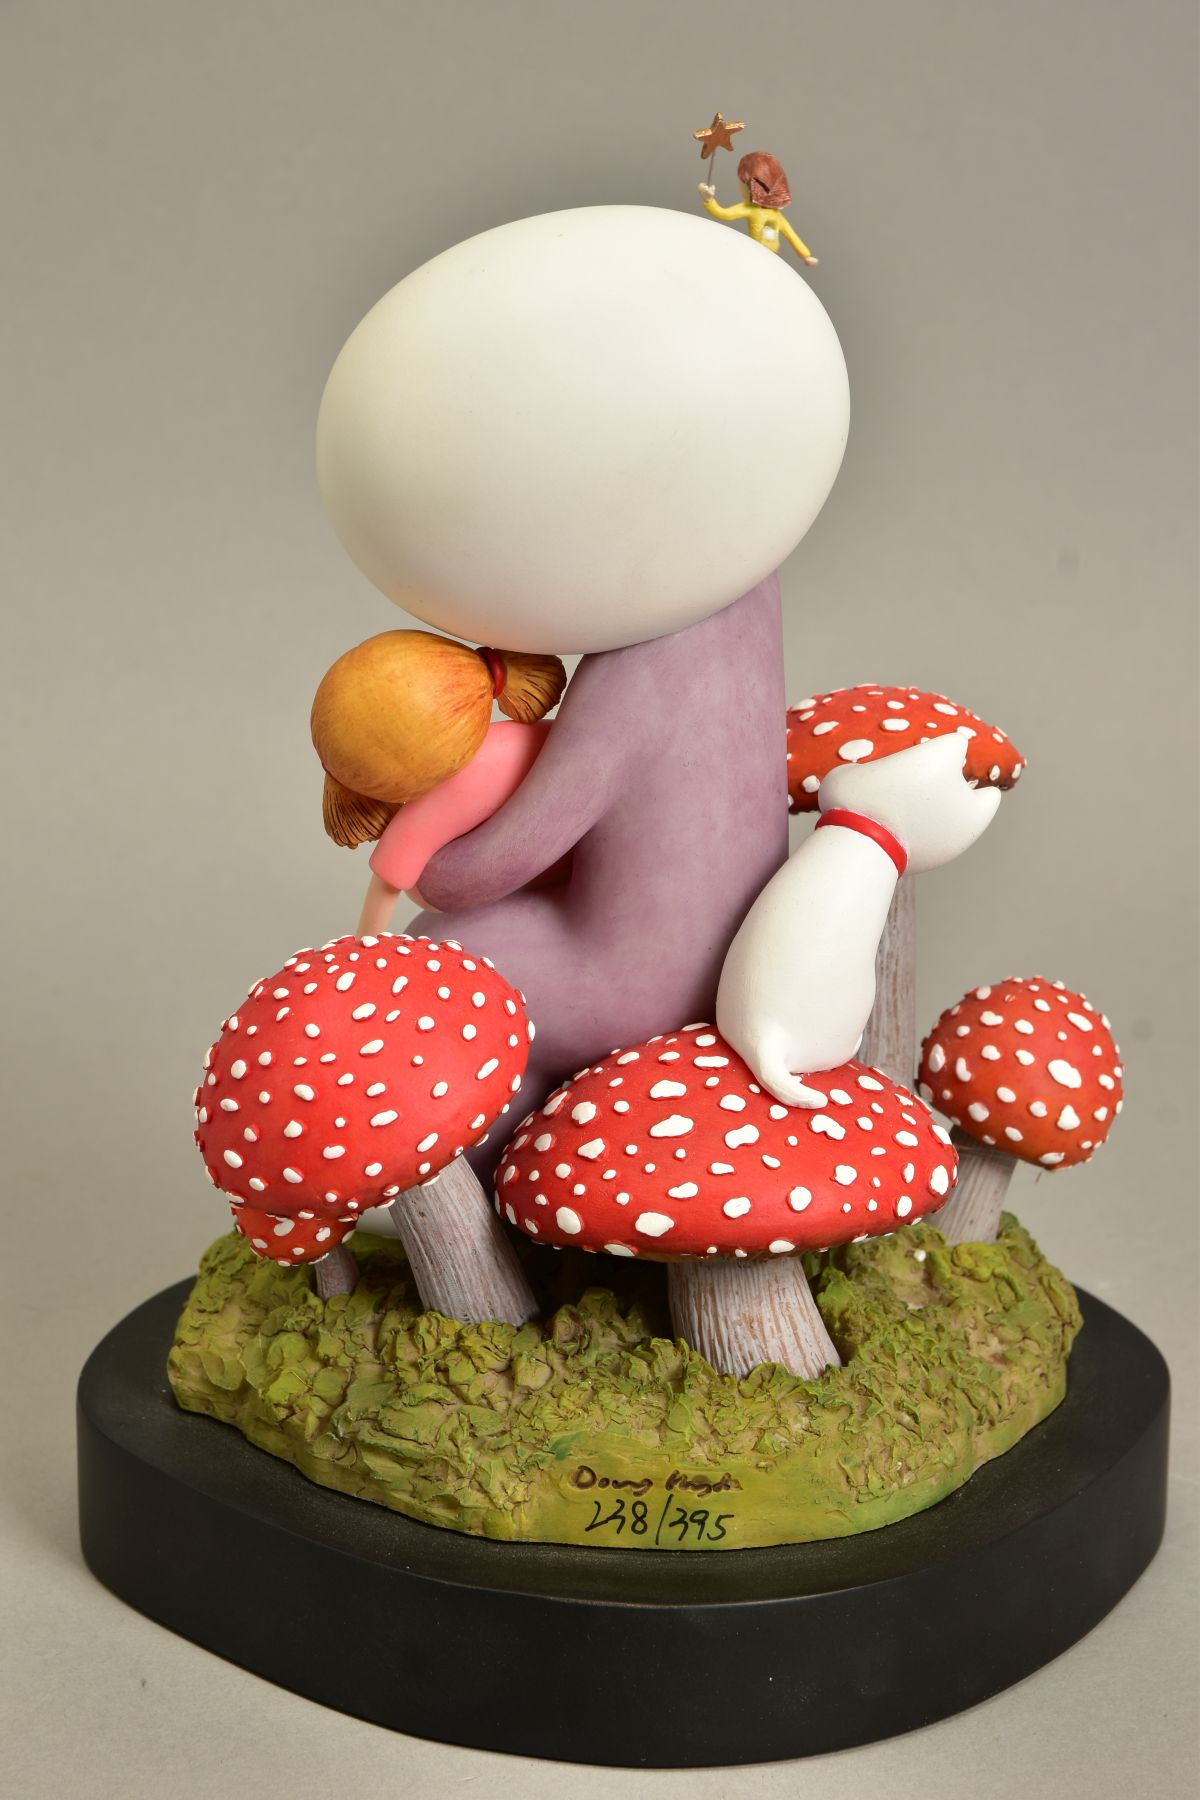 DOUG HYDE (BRITISH 1972) 'MAKE A WISH', limited edition sculpture of a girl and her doll, - Image 6 of 10